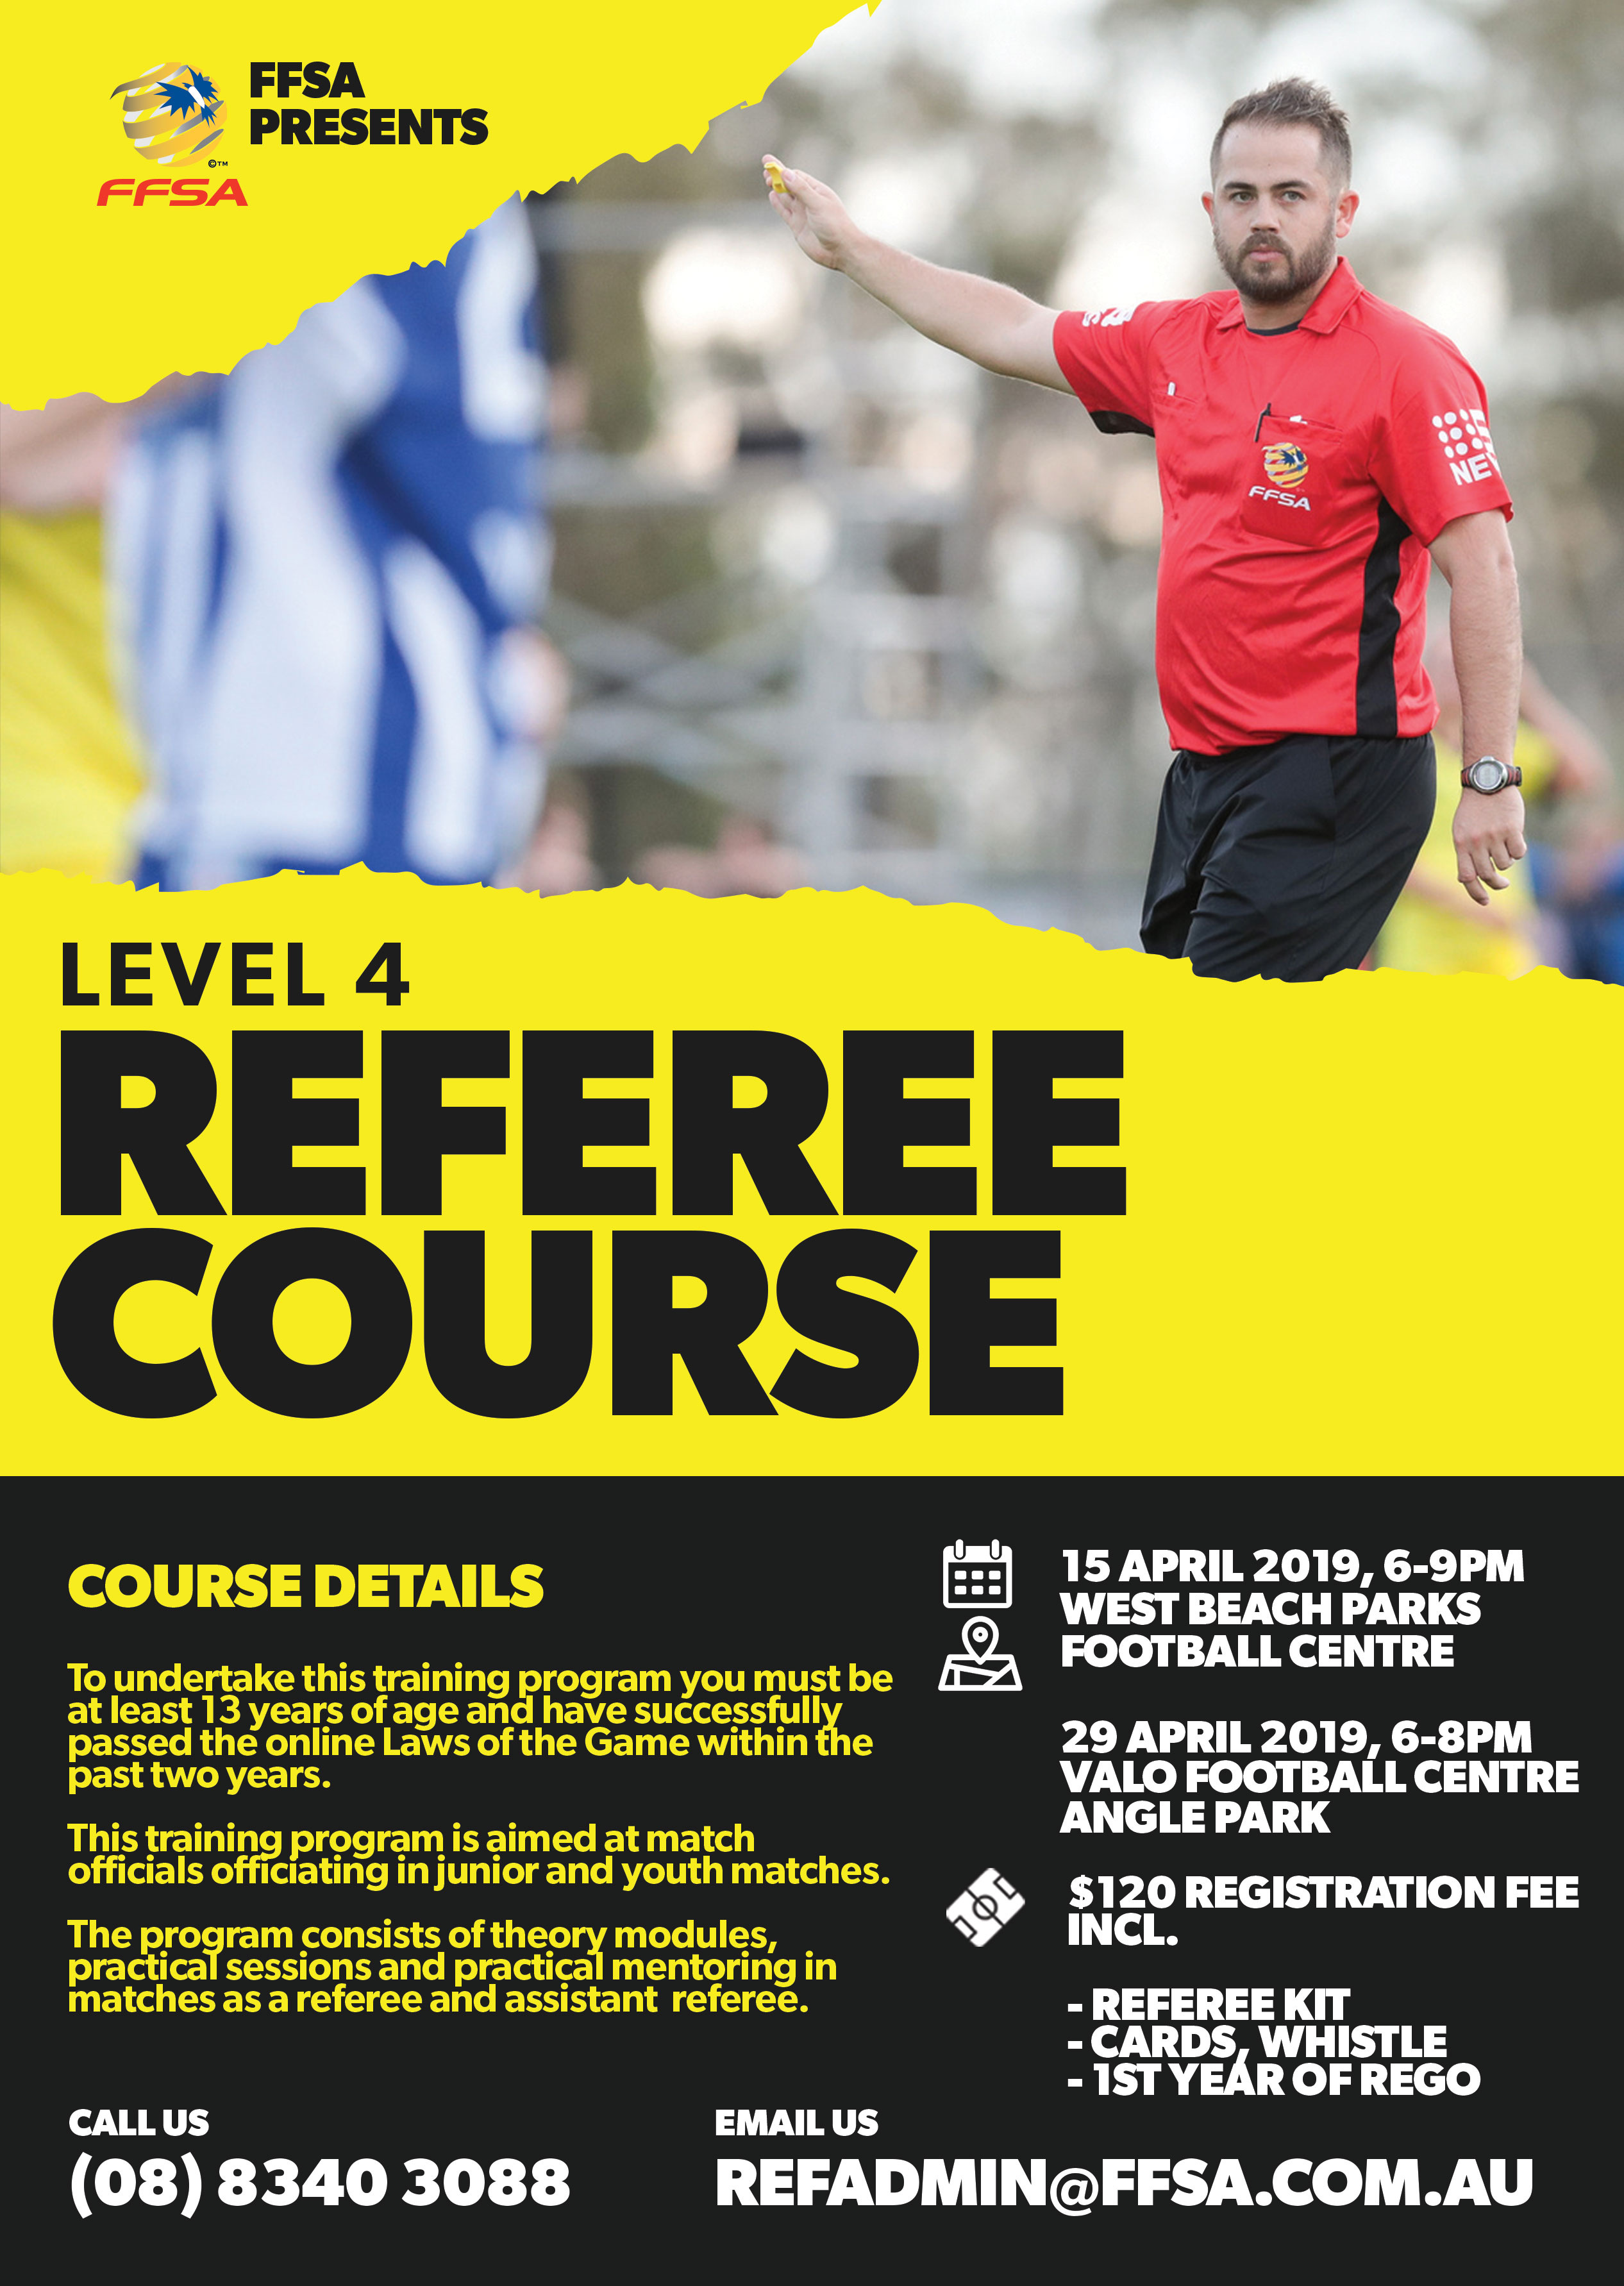 Level 4 Referee Course